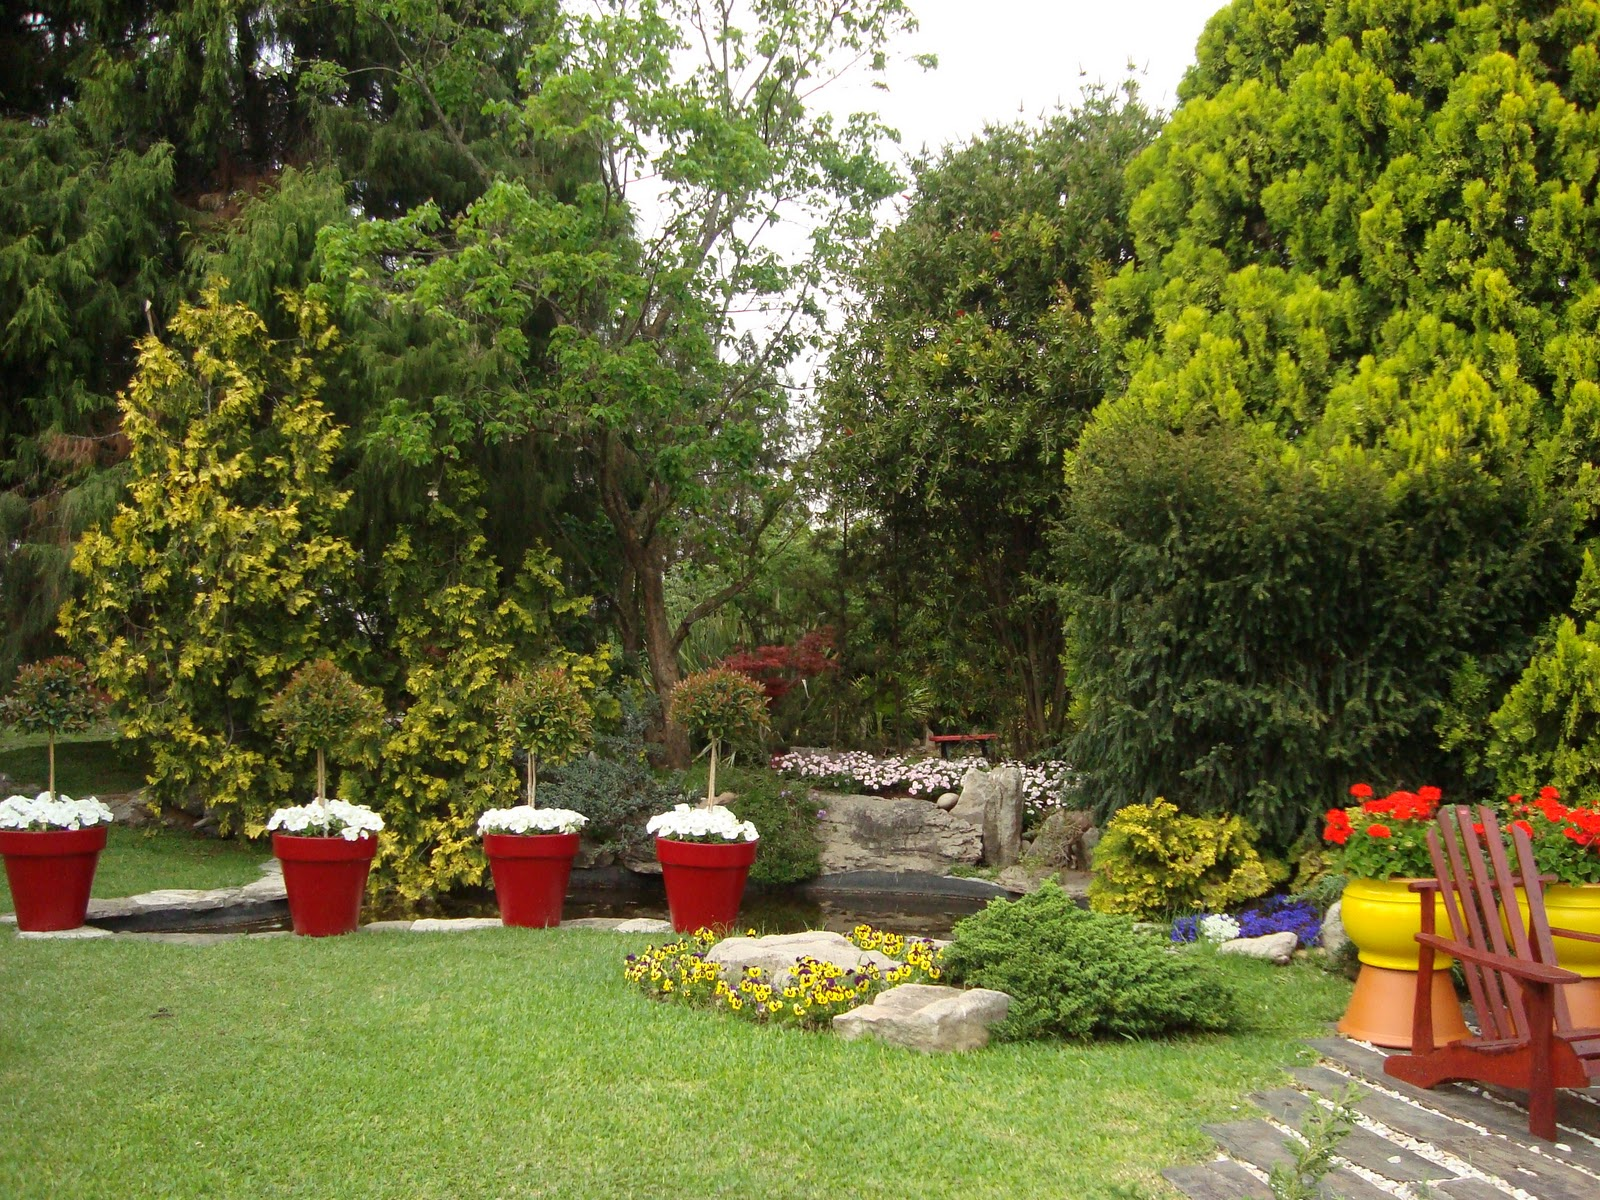 Ideas de jardines y patios : ideas de jardines y patios. ideas ...